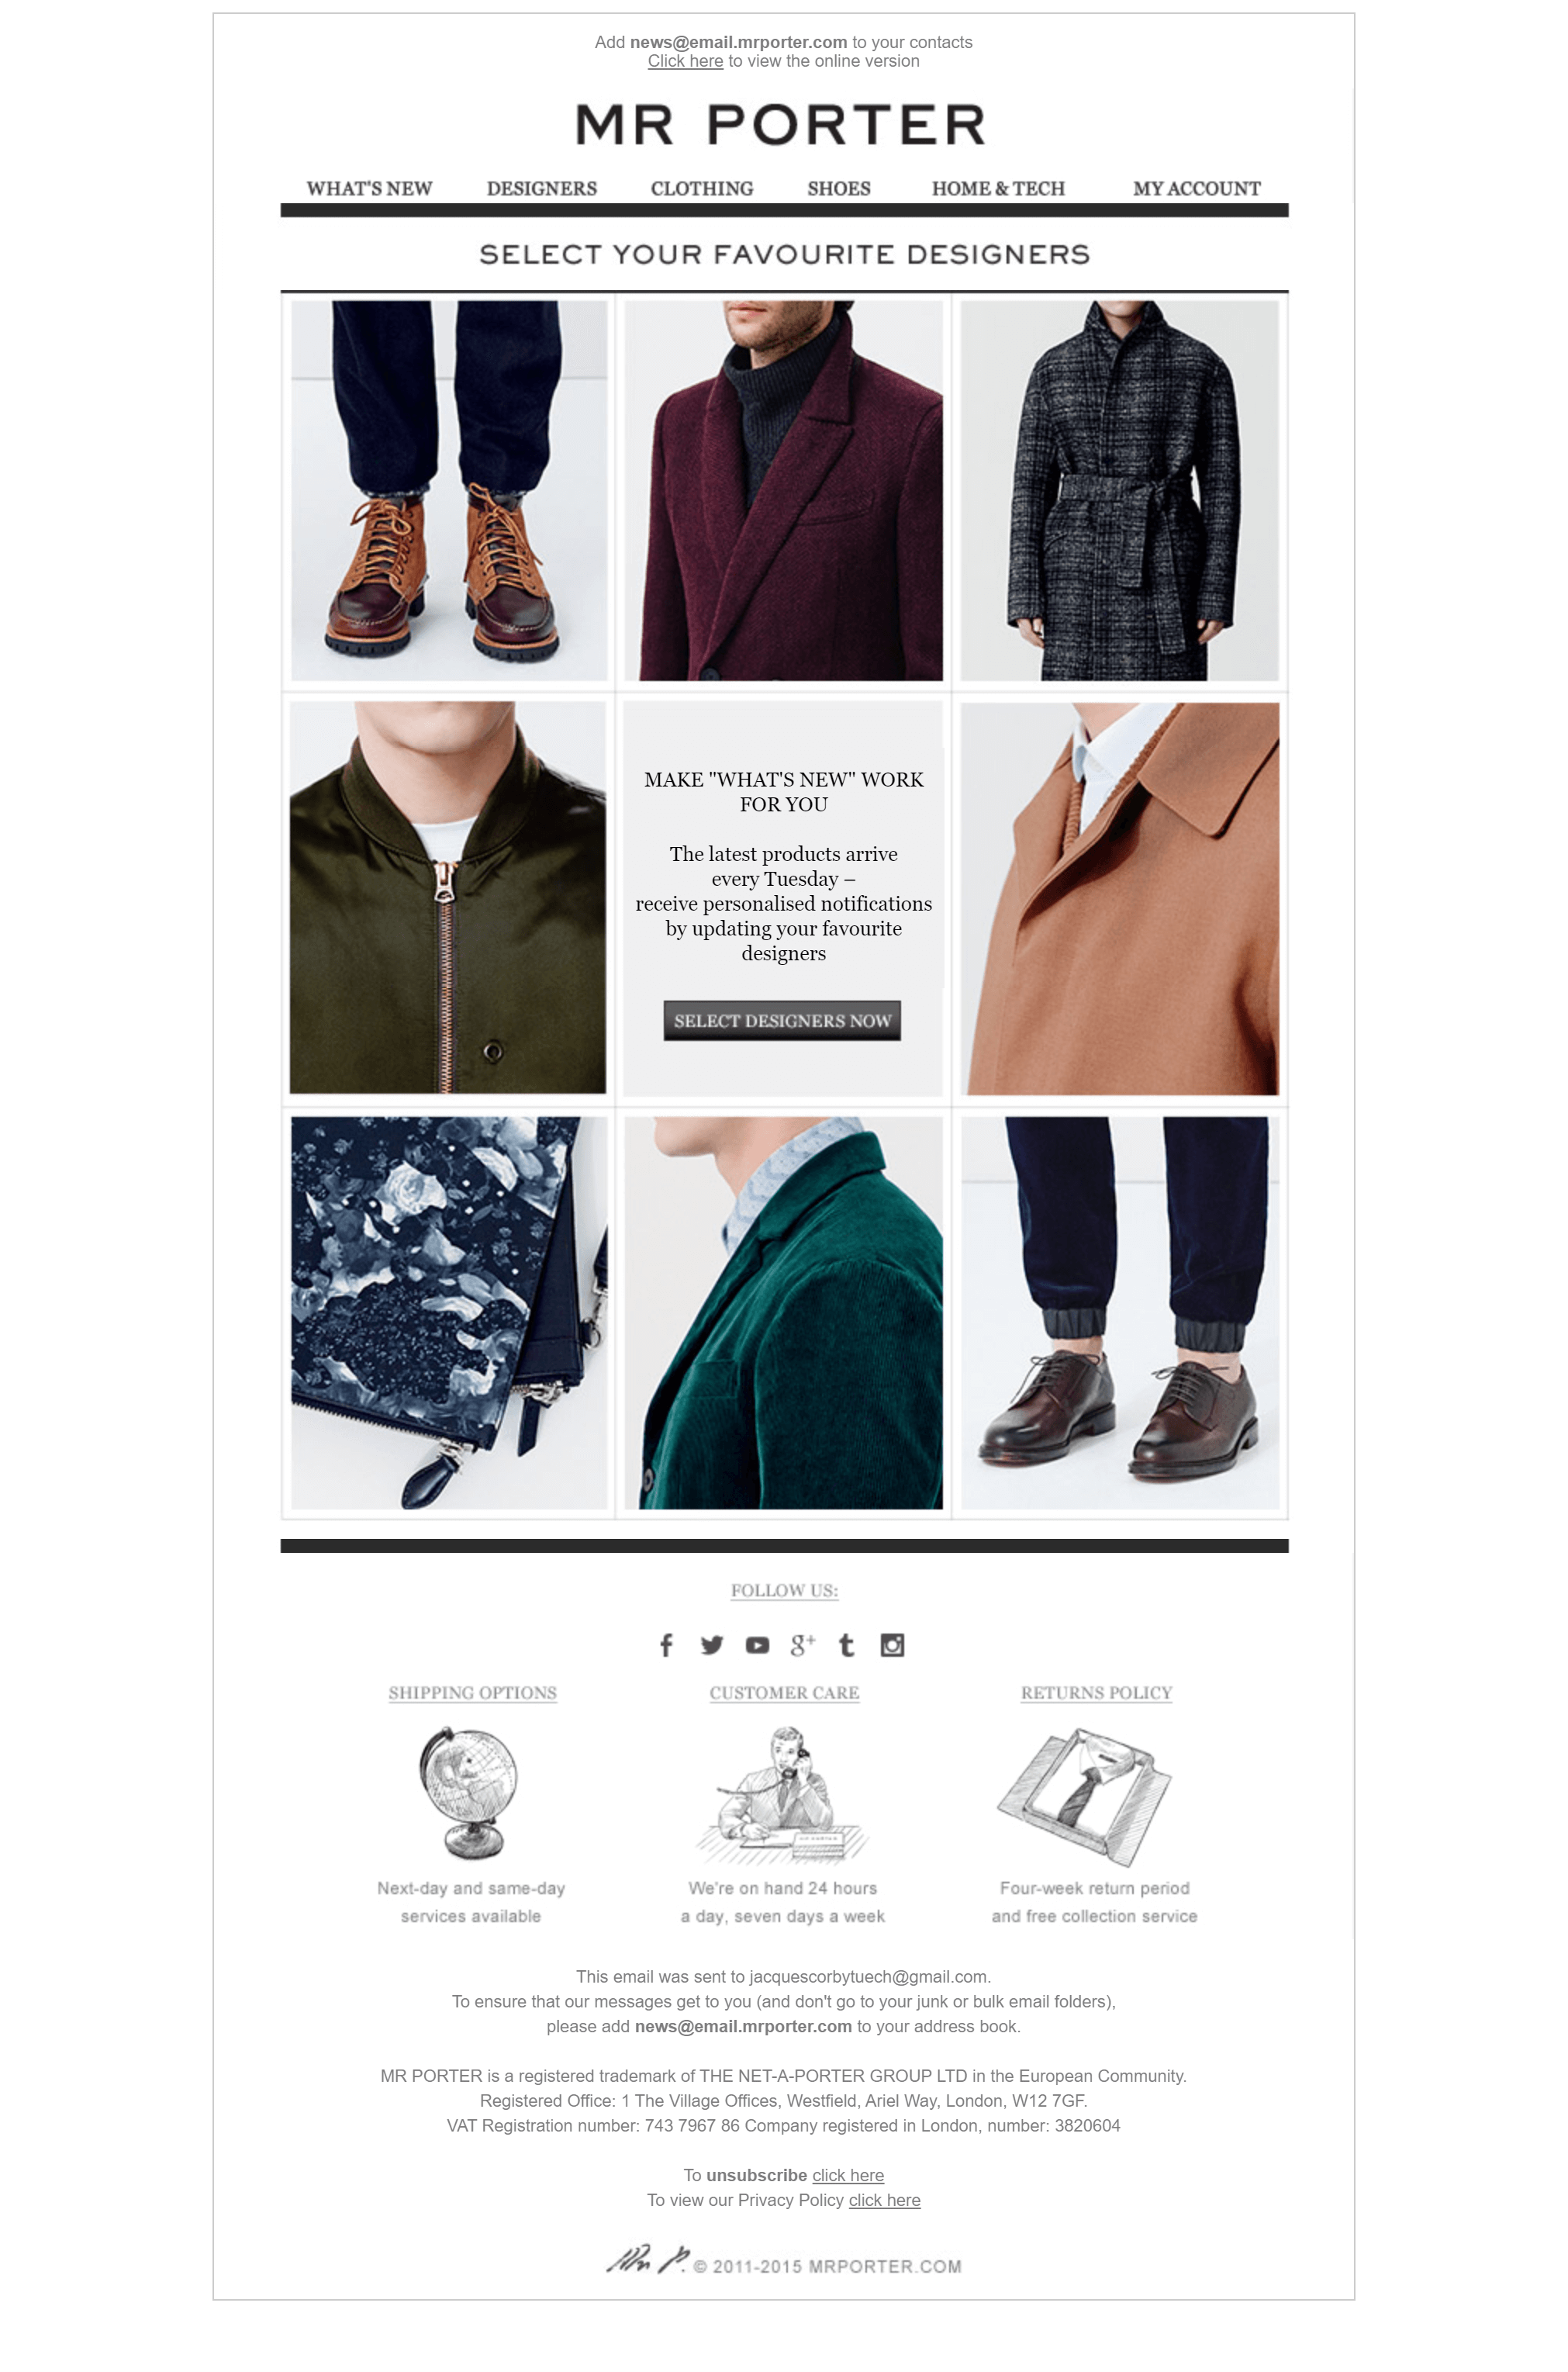 Mr Porter Email, Who are your favourite designers?